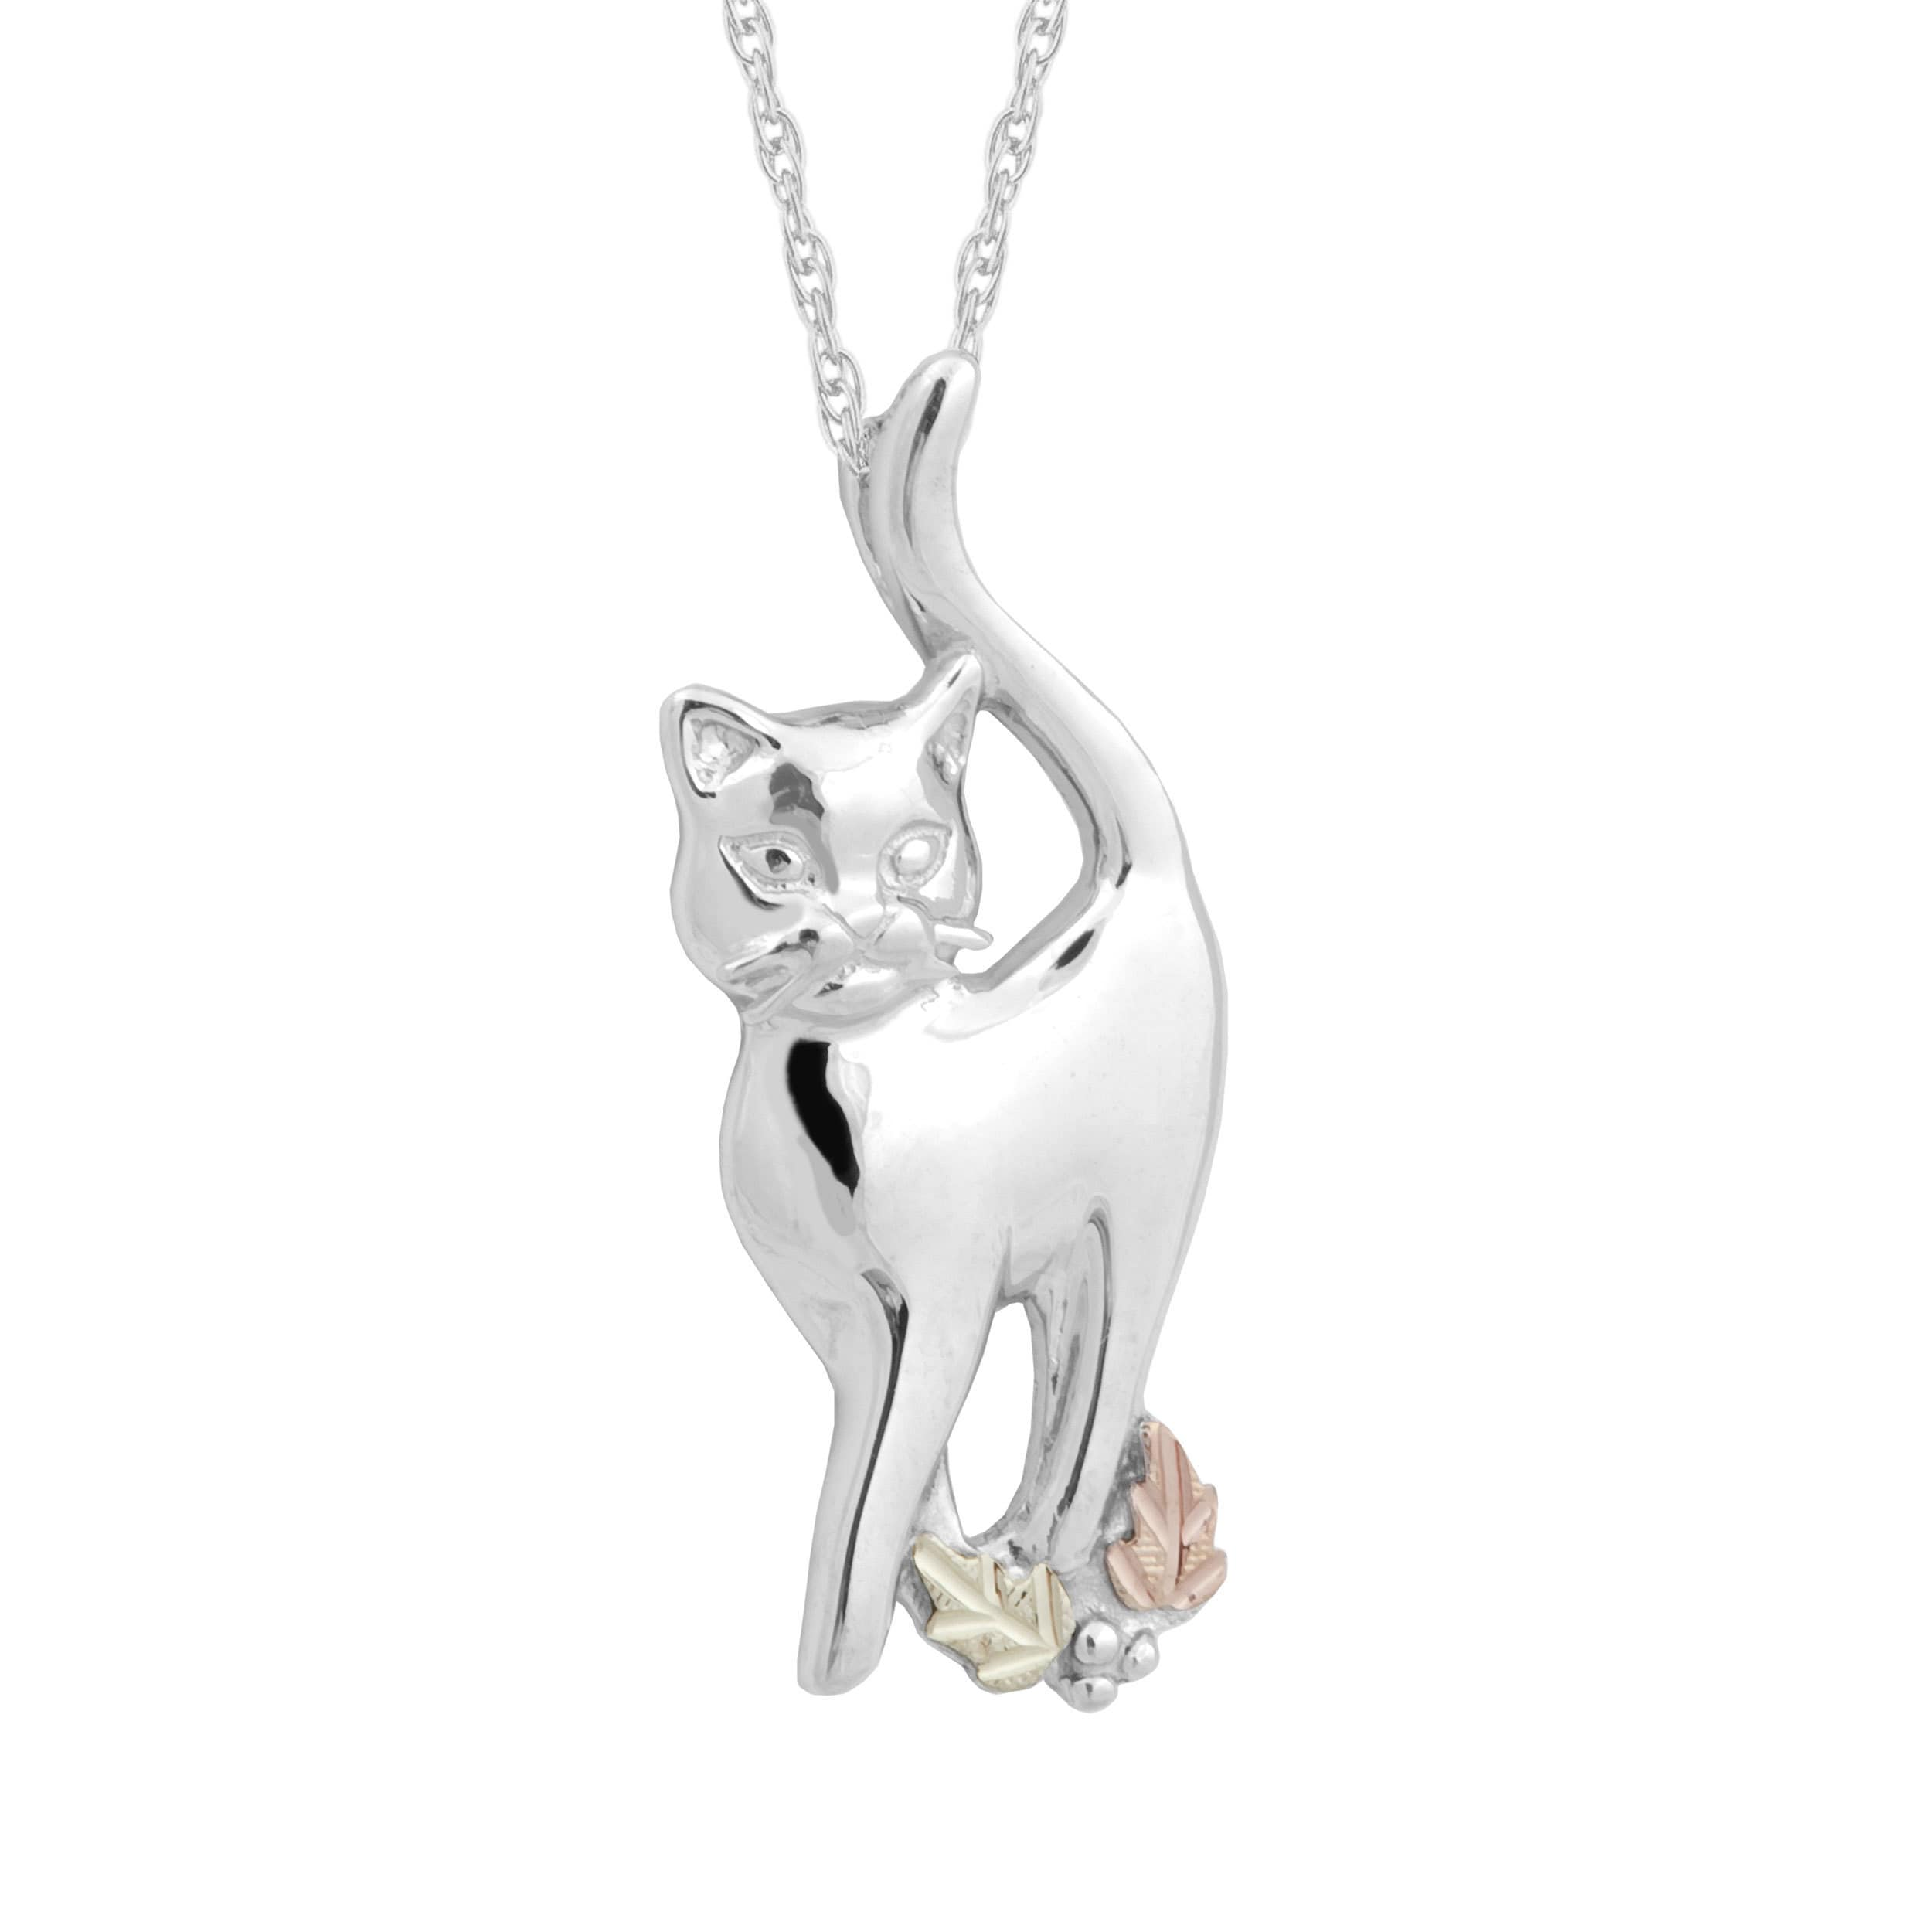 Black hills gold over silver cat pendant free shipping on orders black hills gold over silver cat pendant free shipping on orders over 45 overstock 17815667 aloadofball Gallery